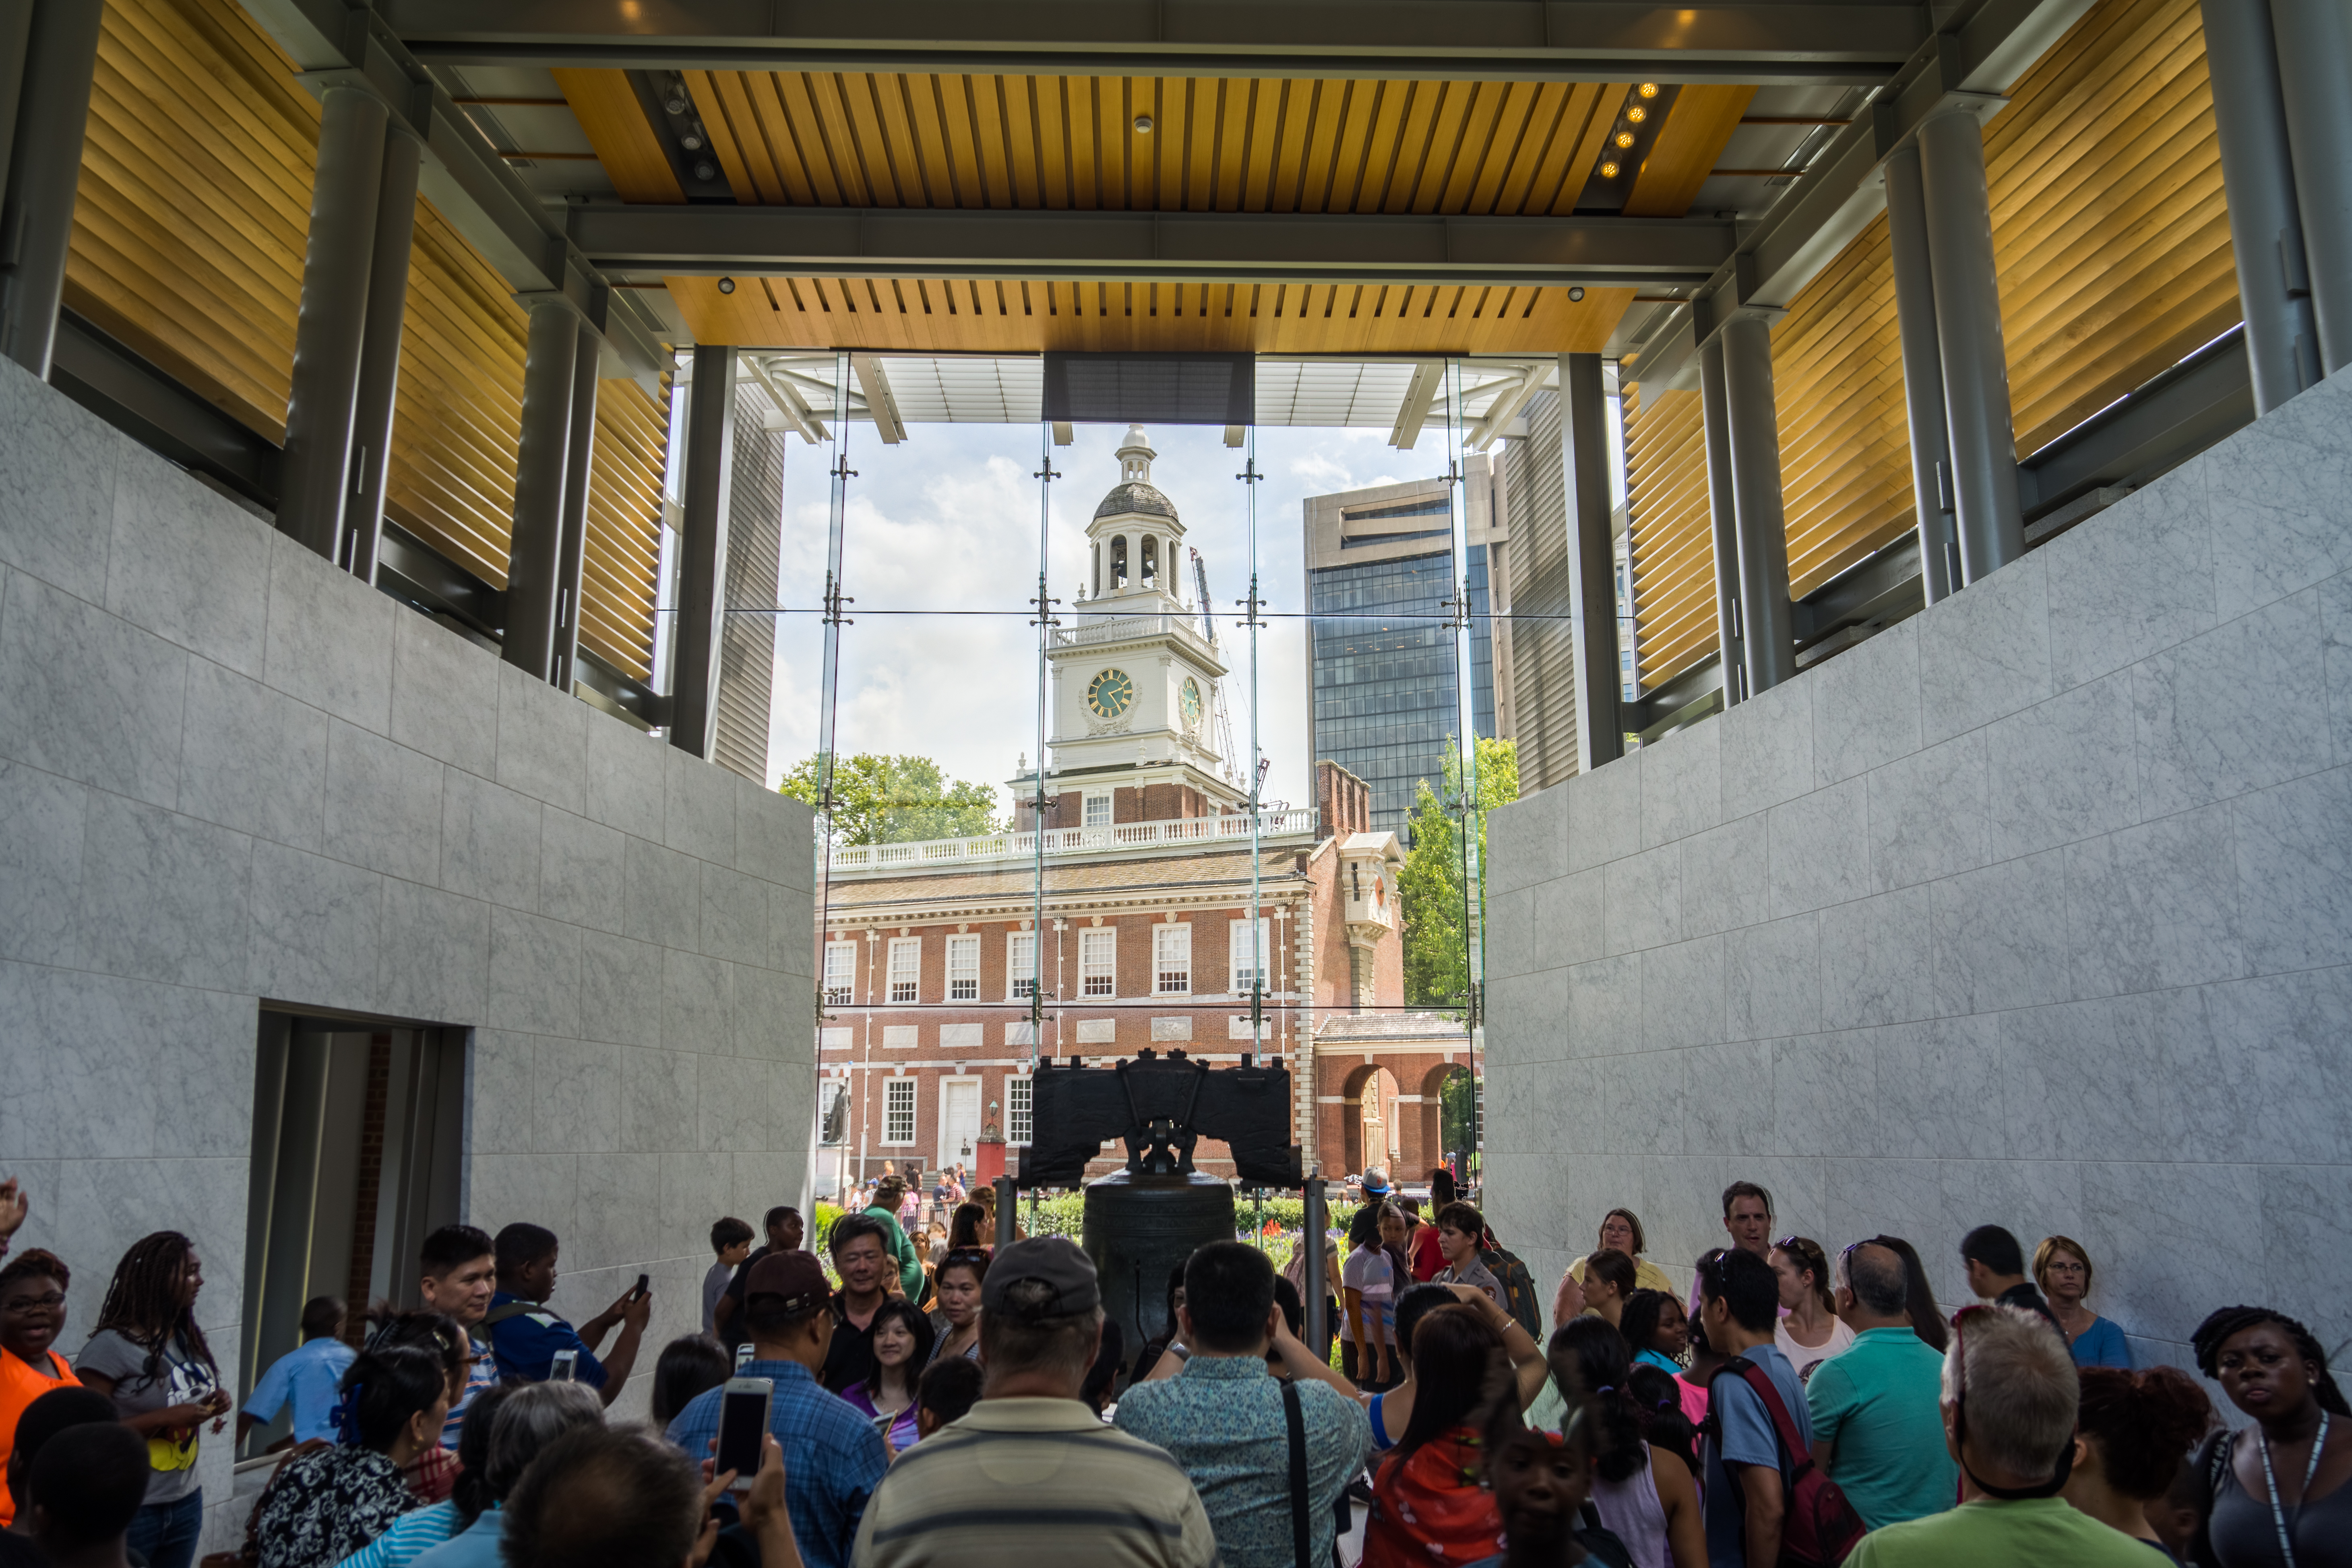 Inside the Liberty Bell Center looking out toward Independence Hall in Philadelphia.